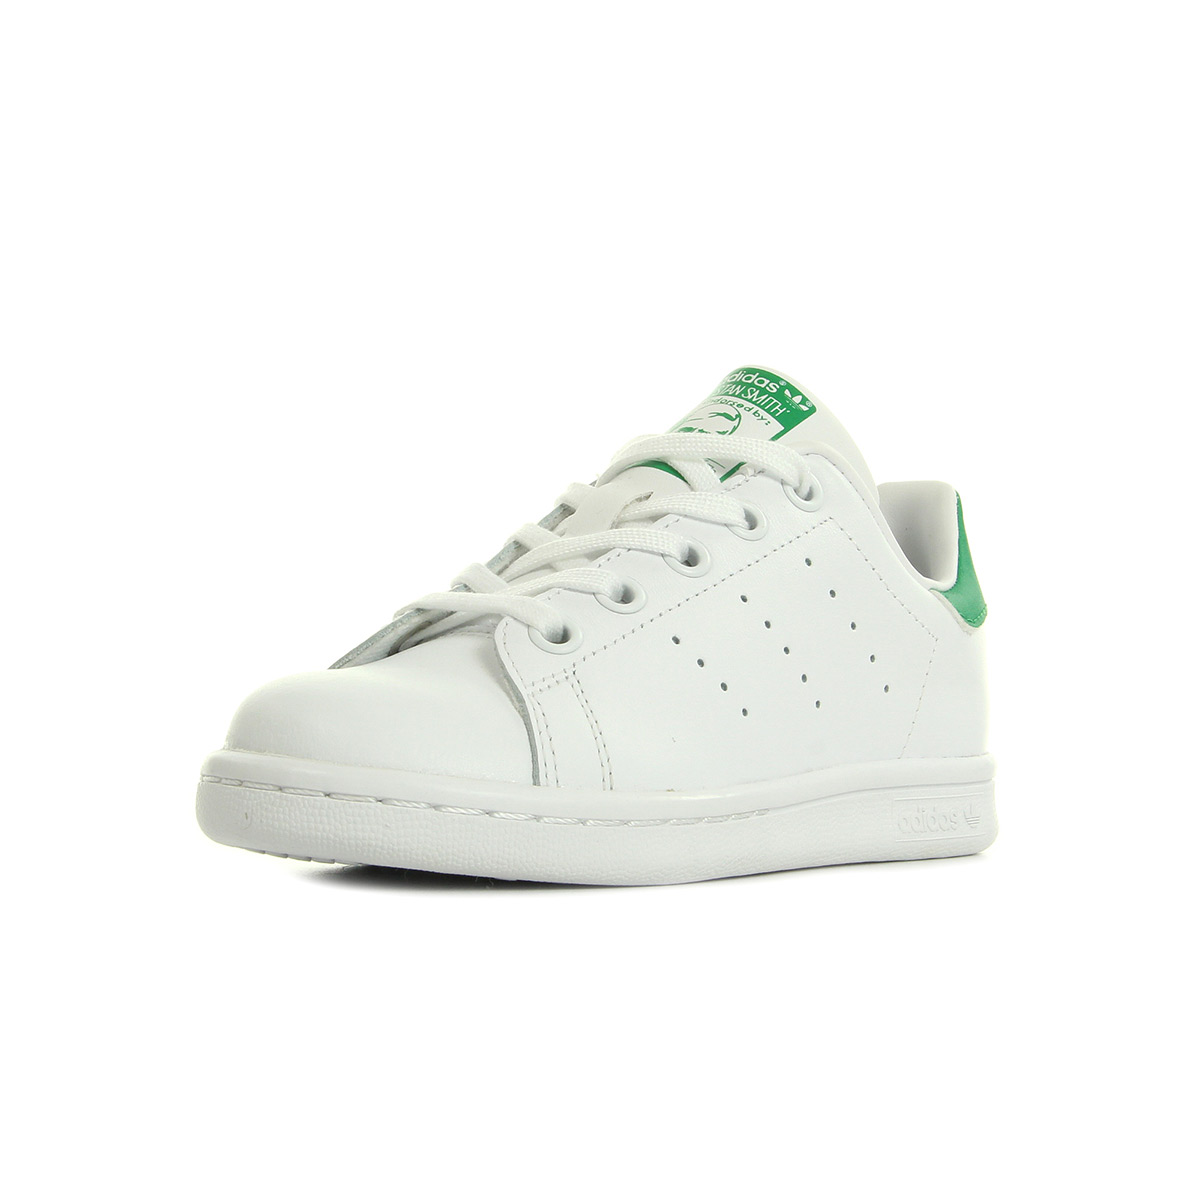 6e7cdbb2e34 Chaussures Baskets adidas unisexe Stan Smith taille Blanc Blanche Cuir  Lacets